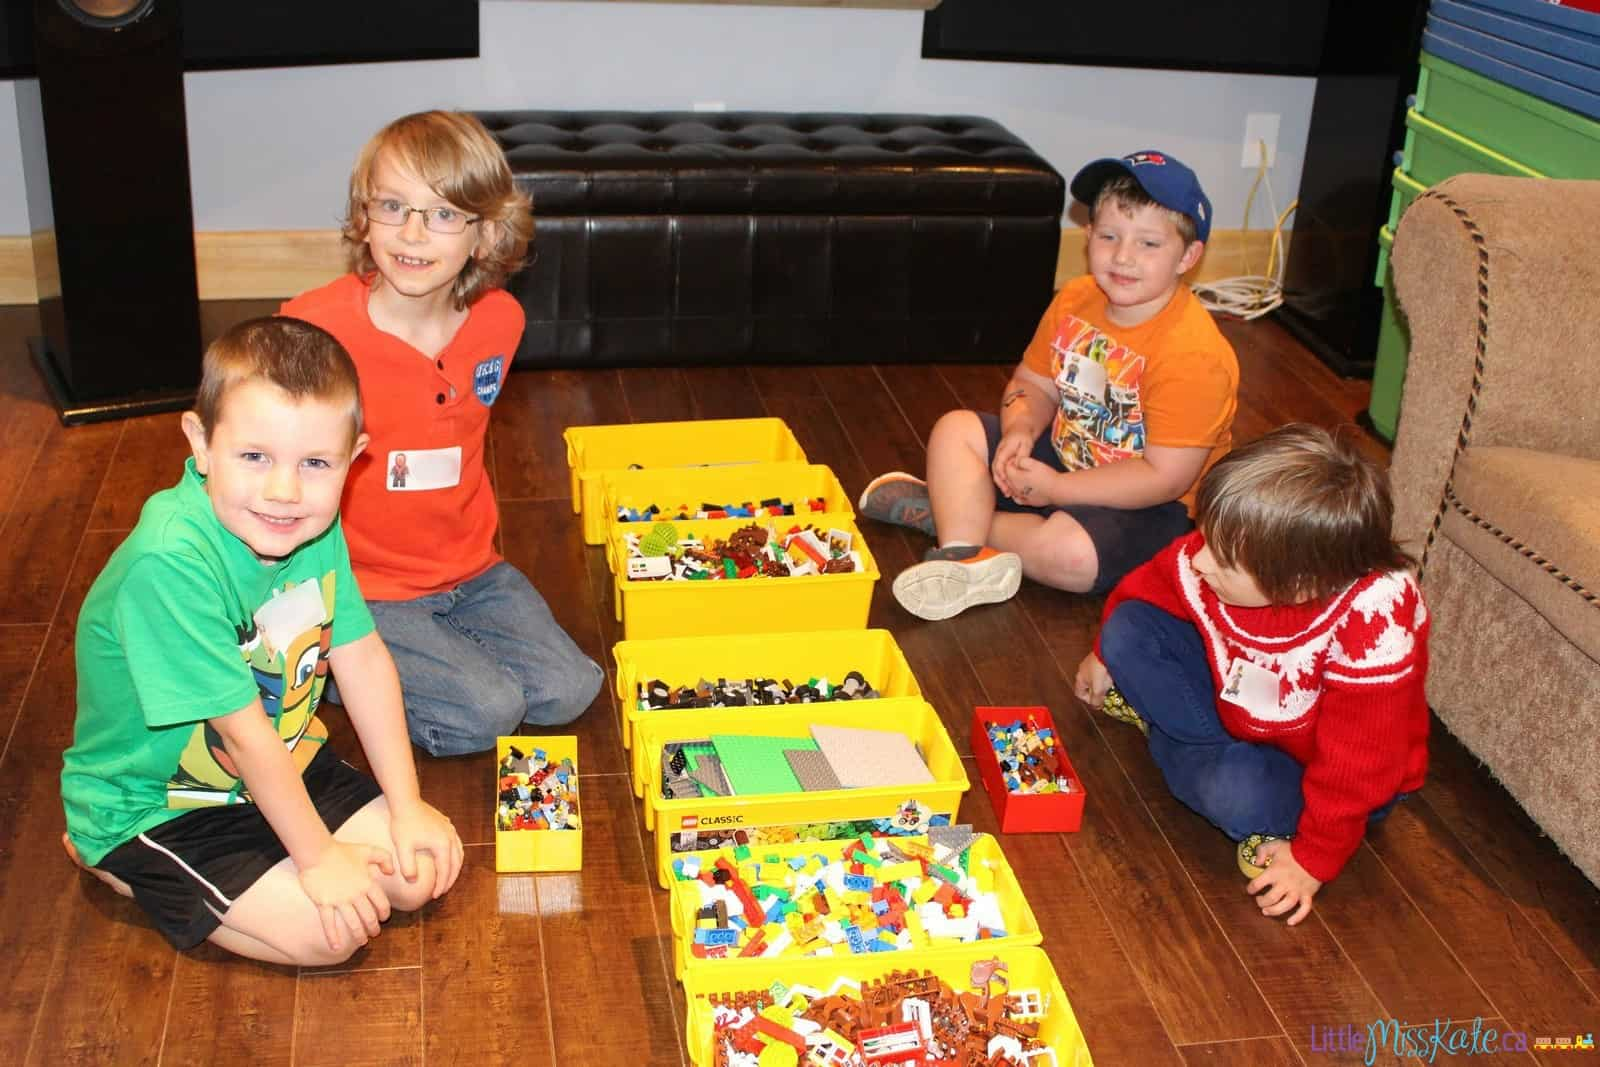 Lego Birthday Party Games and Entertainment with kids n bricks ...